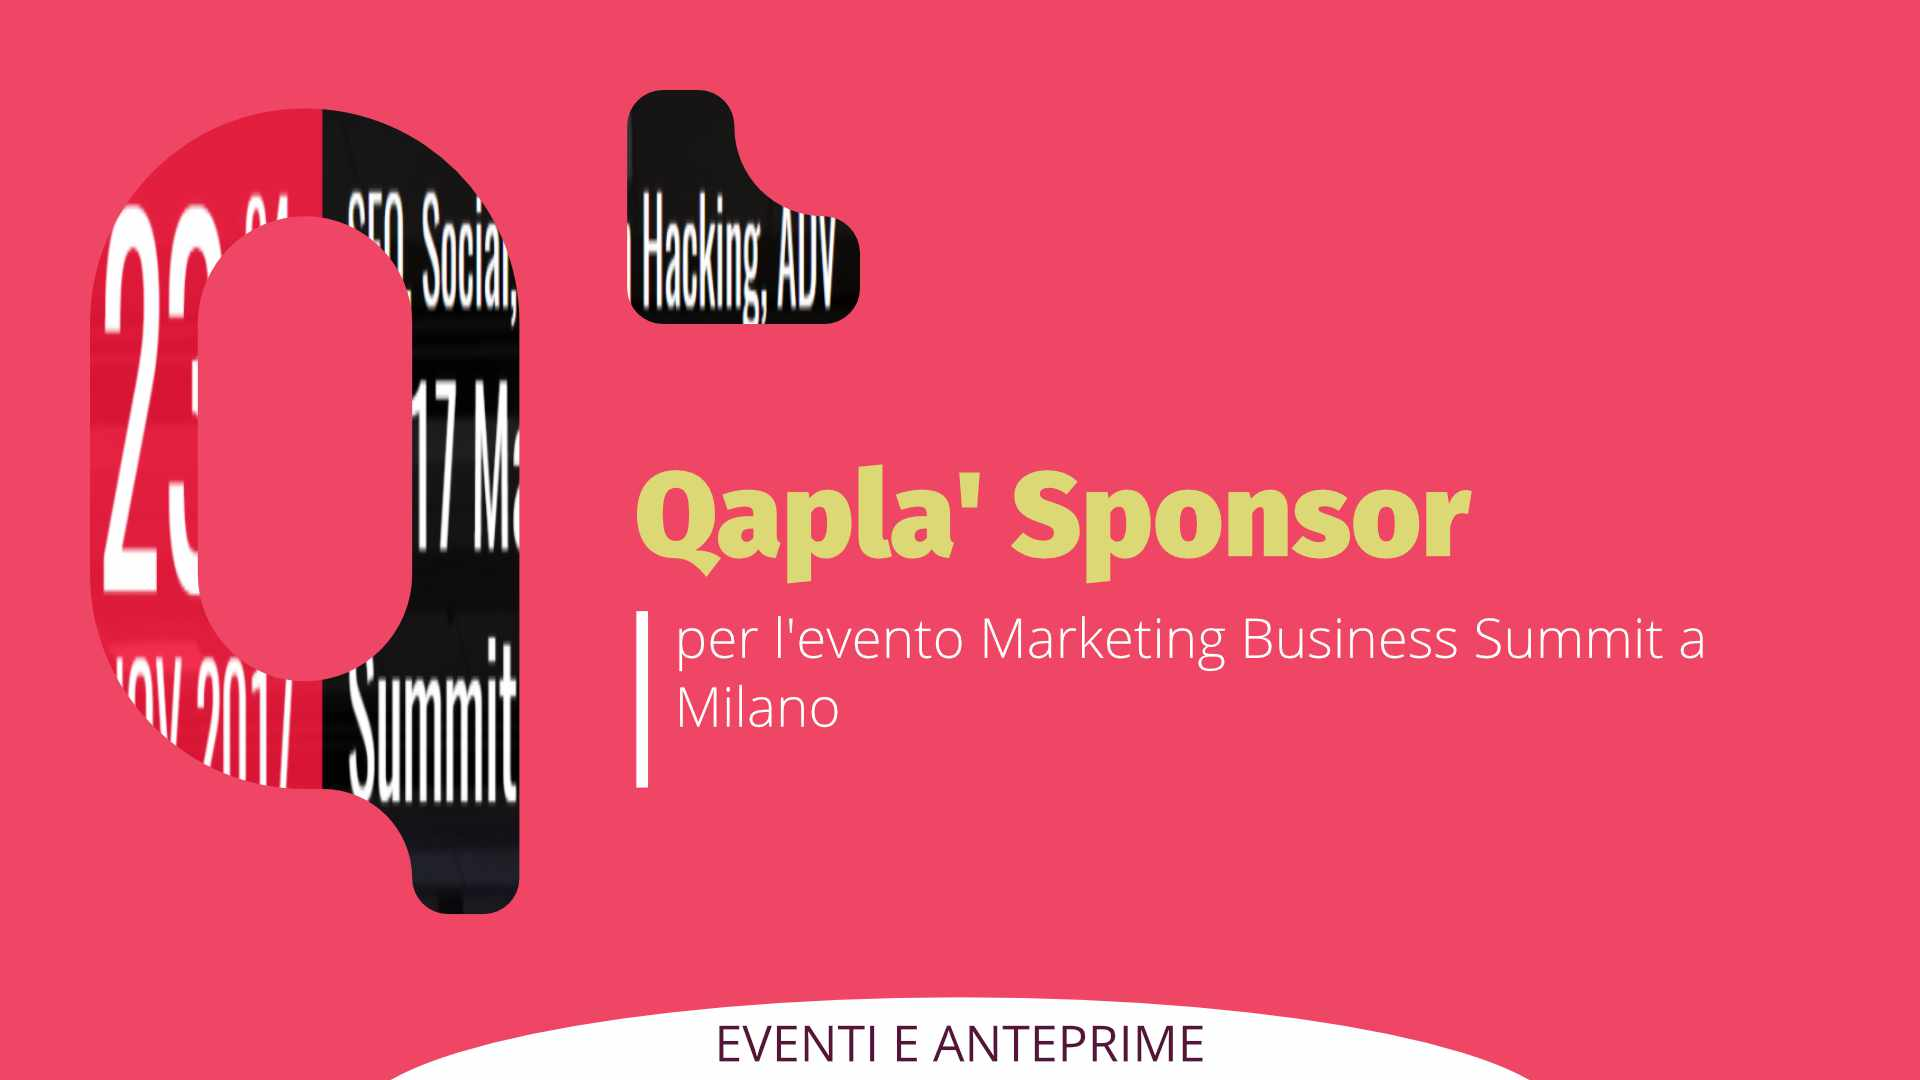 Qapla' sponsor di Marketing Business Summit a Milano #mbsummit